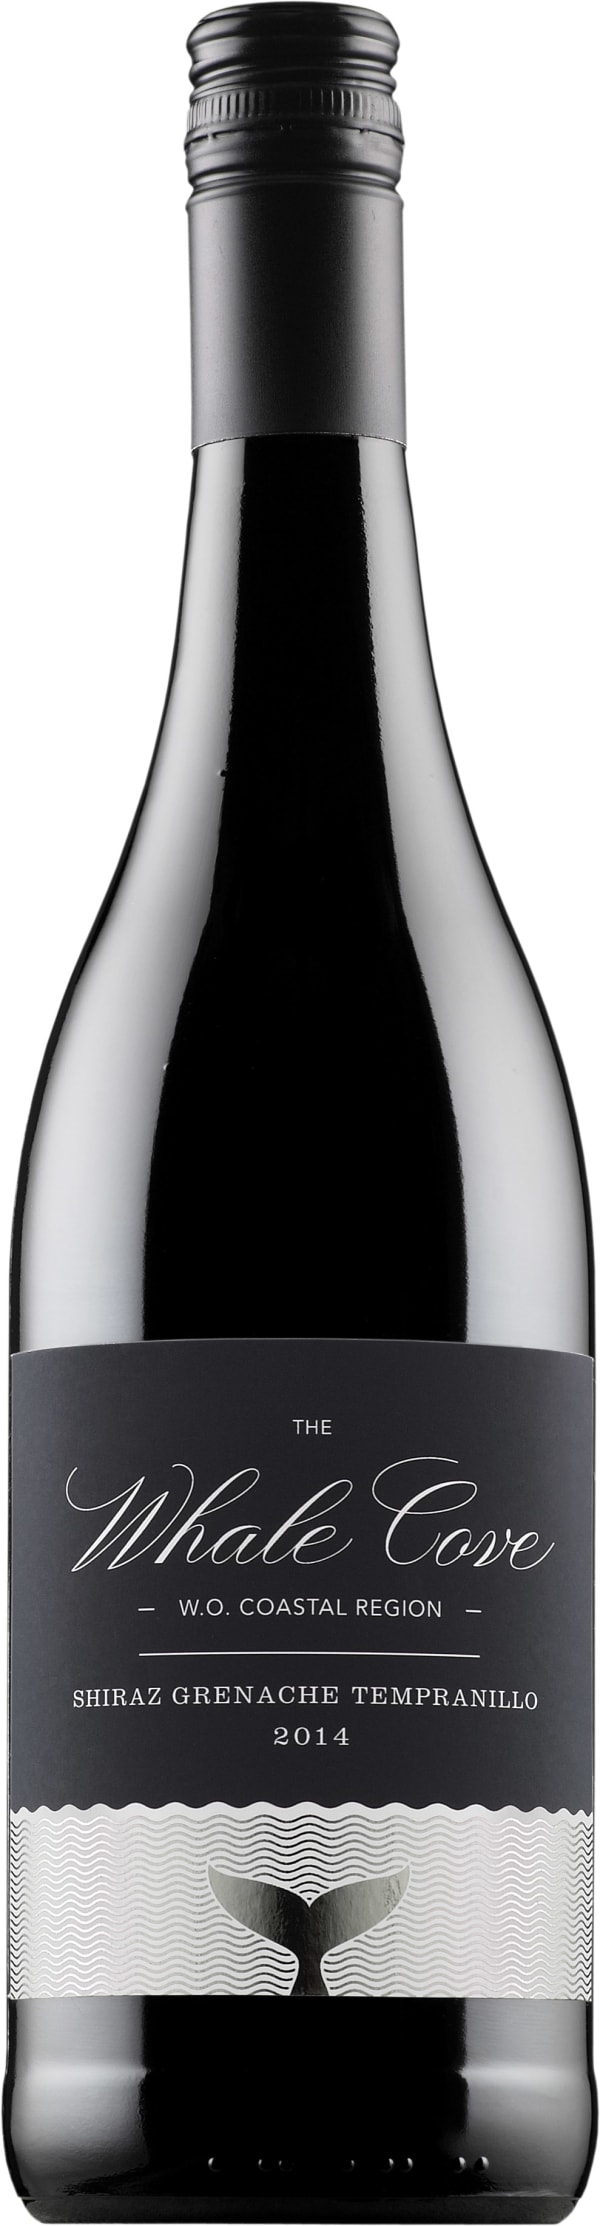 The Whale Cove Shiraz Grenache Tempranillo 2014